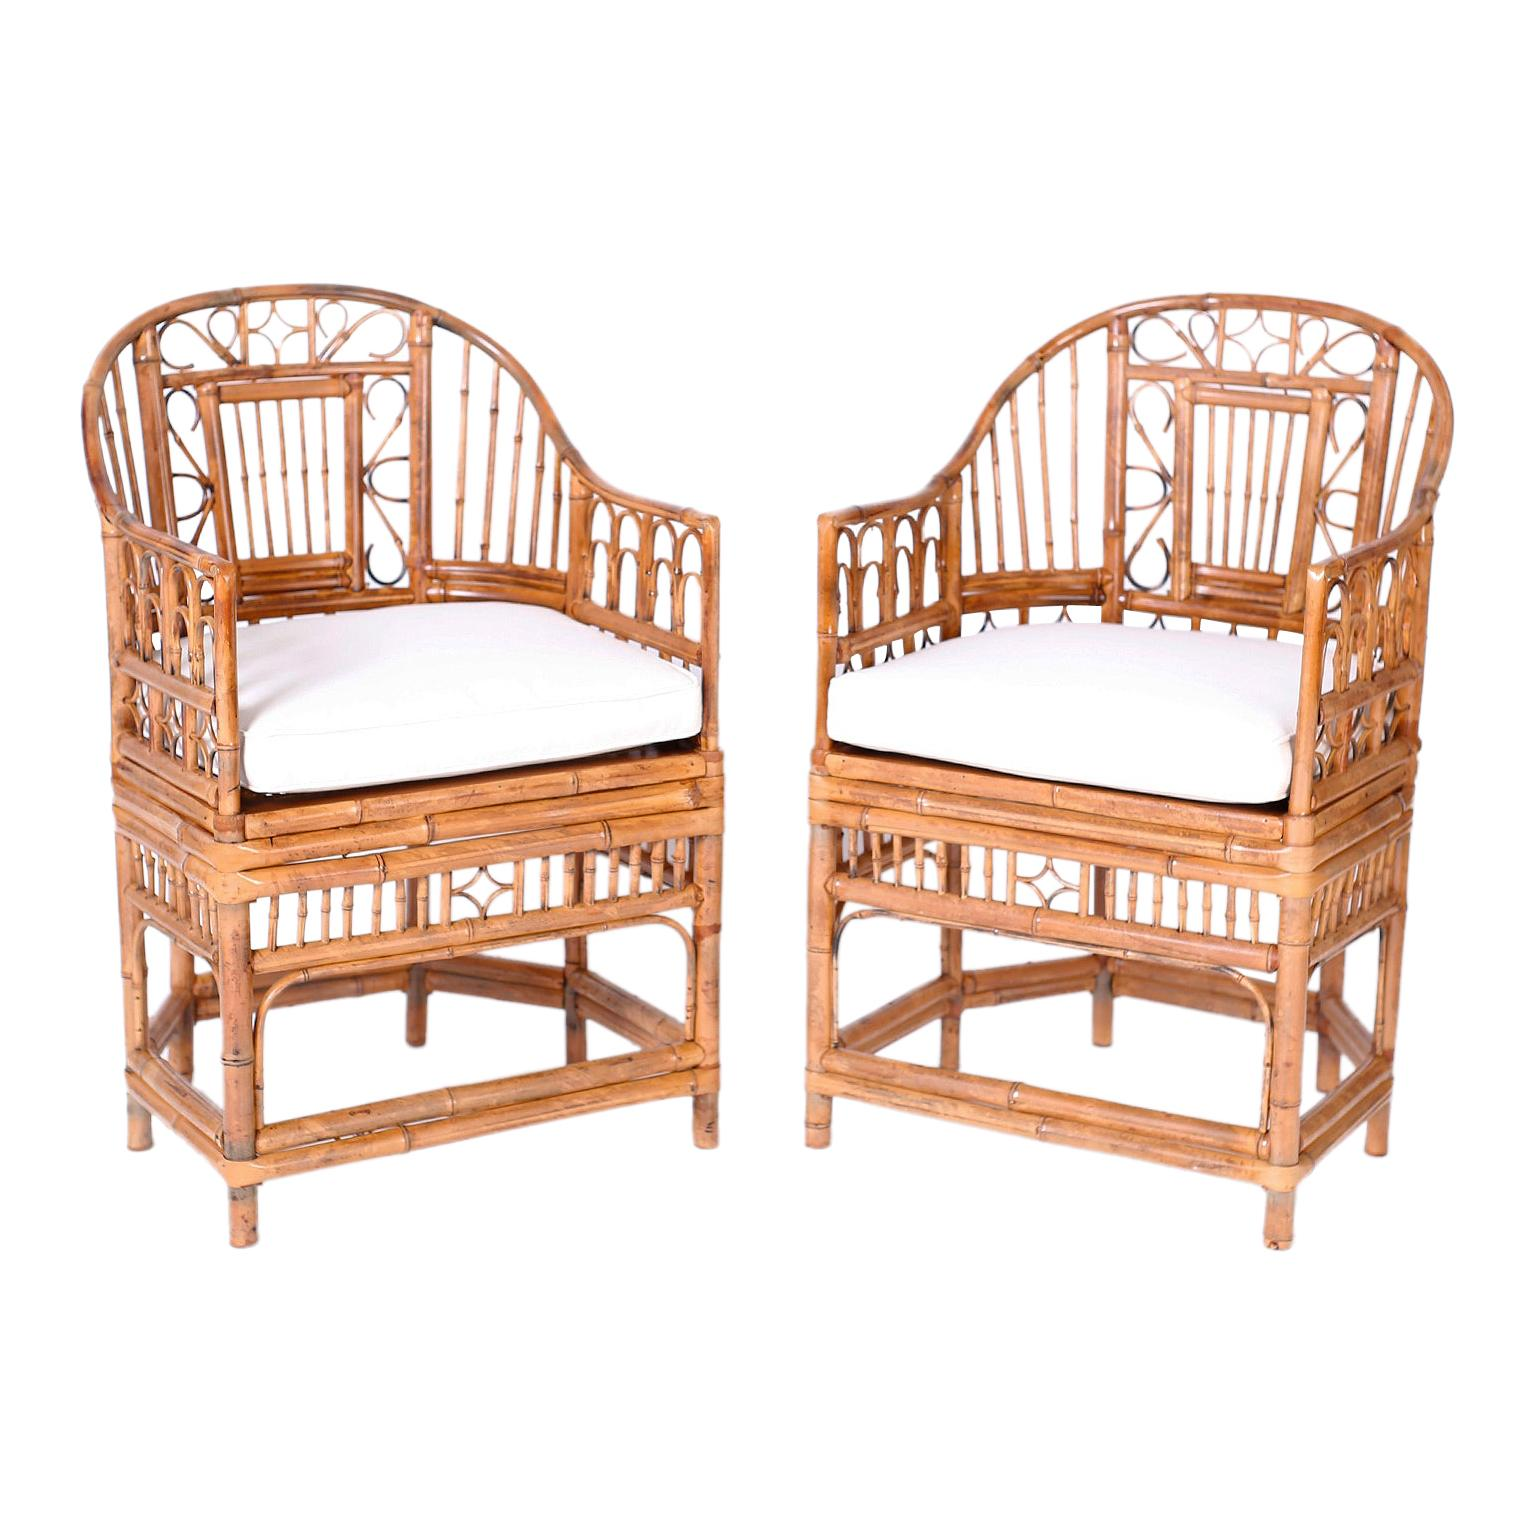 Pair of Bamboo Brighton Pavilion Chairs